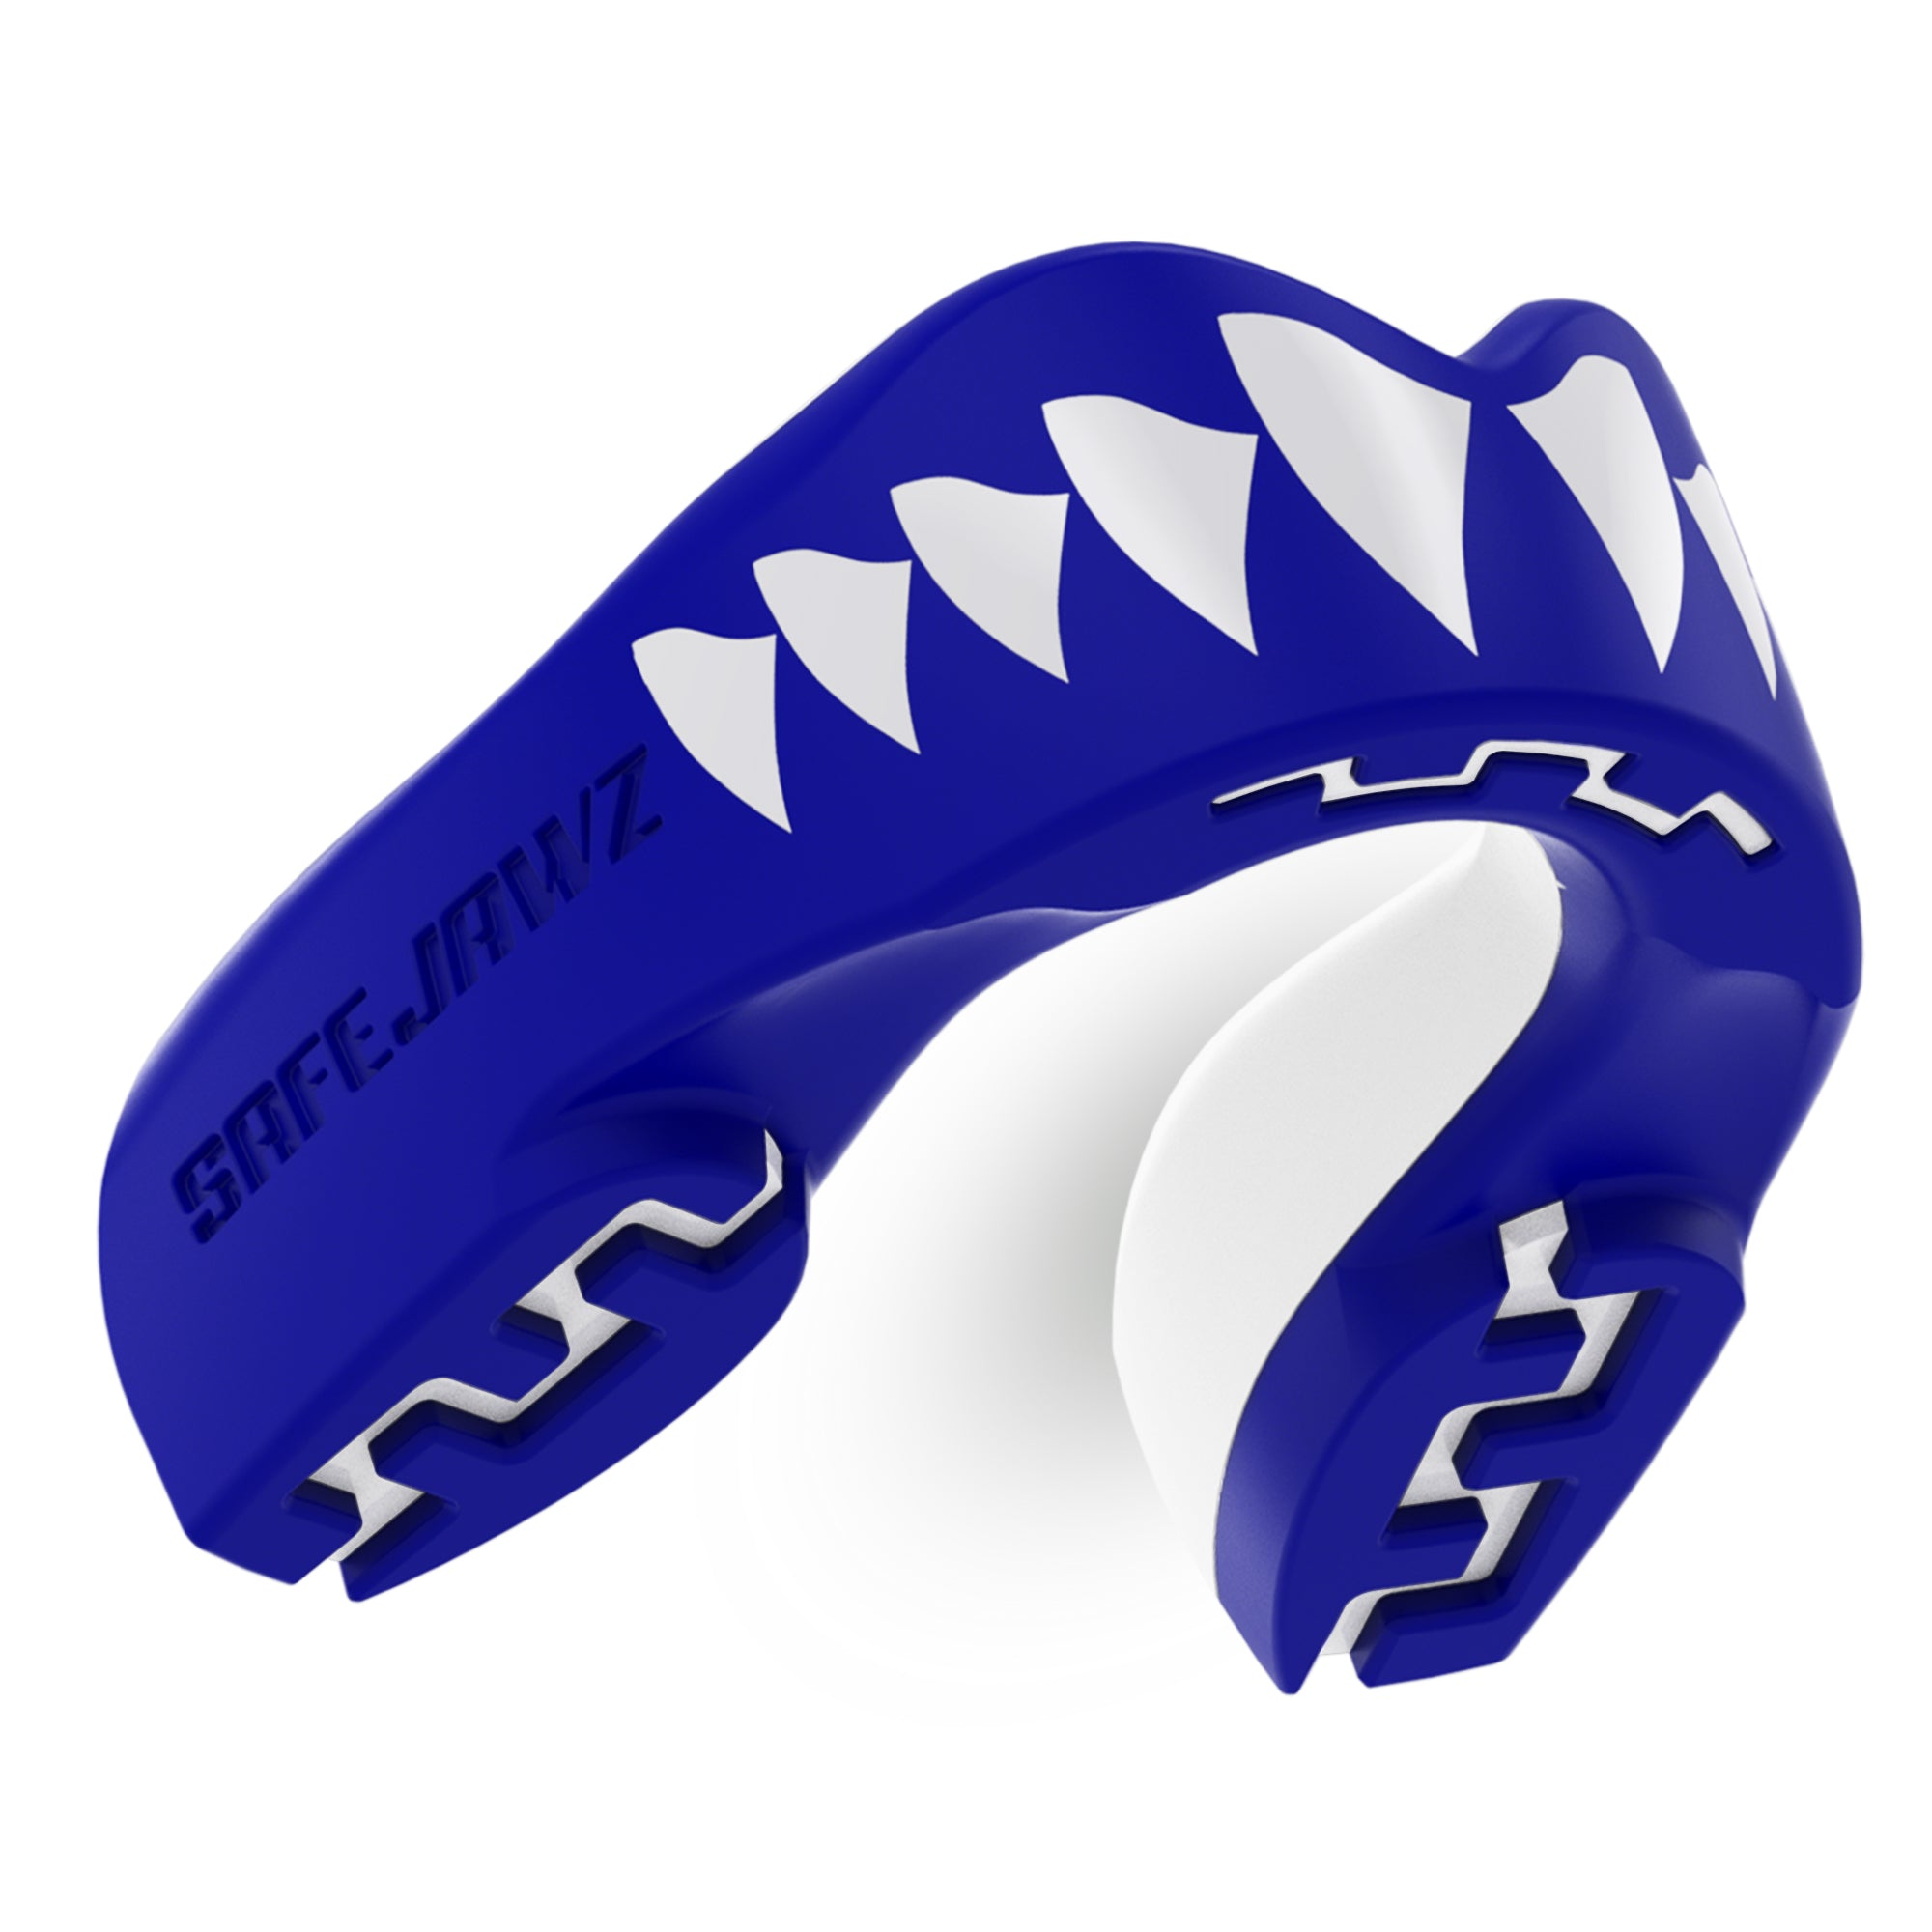 SAFEJAWZ® Extro Series Self-Fit Shark Mouthguard